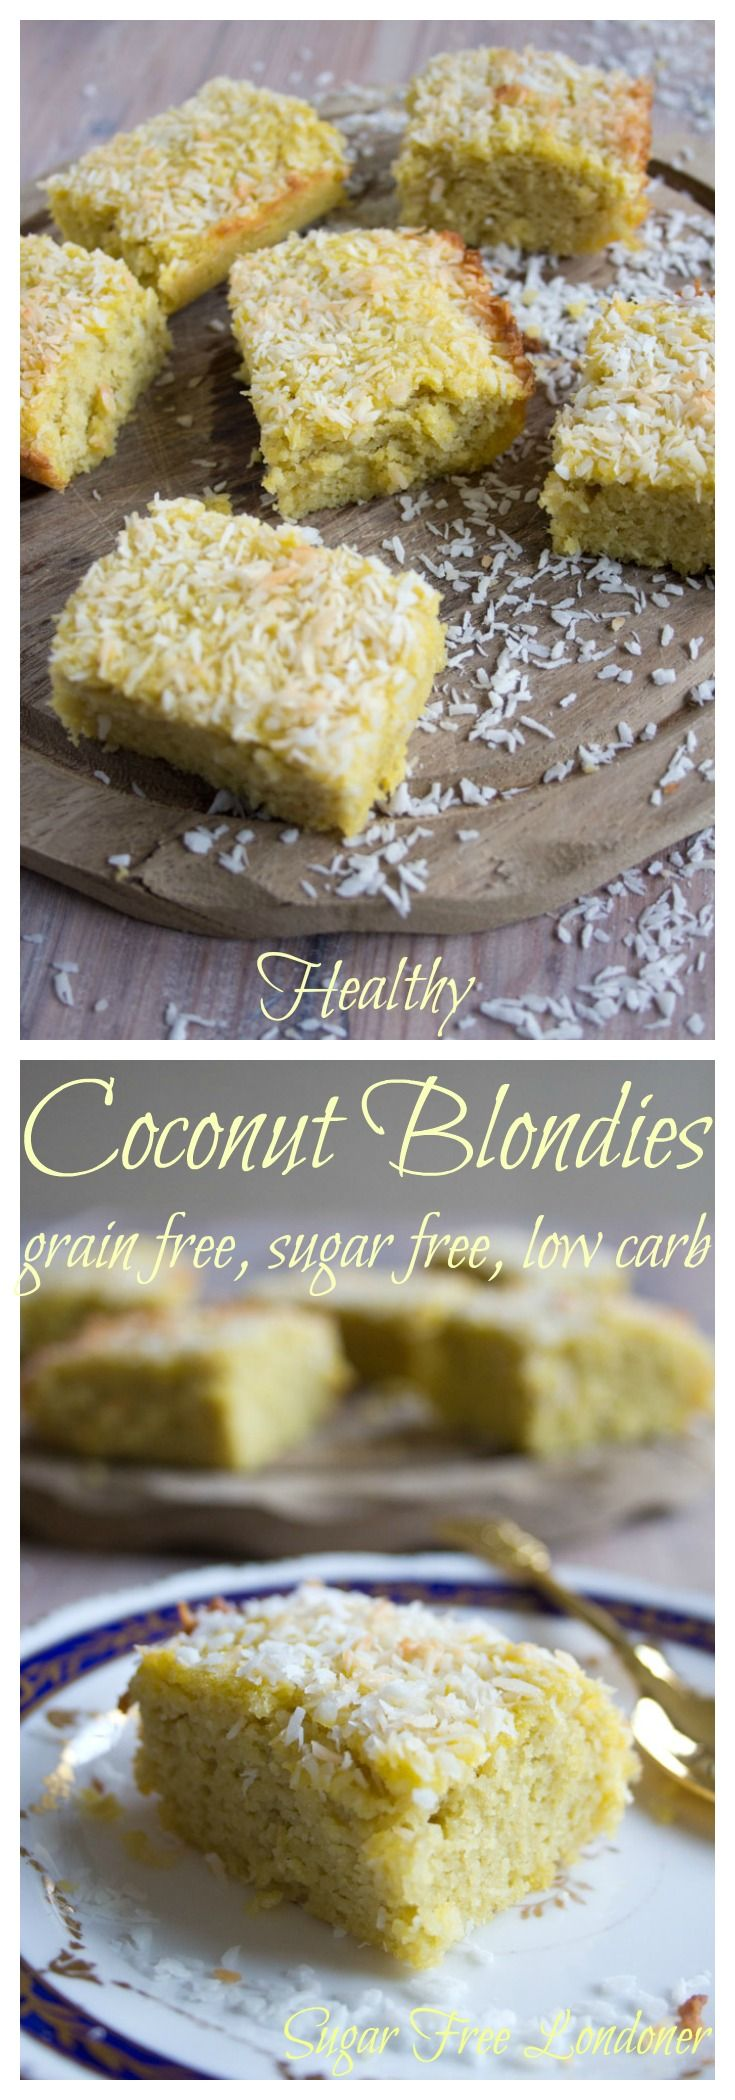 An indulgent and deliciously moist dessert: These Sugar Free Coconut Blondies are low carb, paleo, gluten and grain free. Happy days!